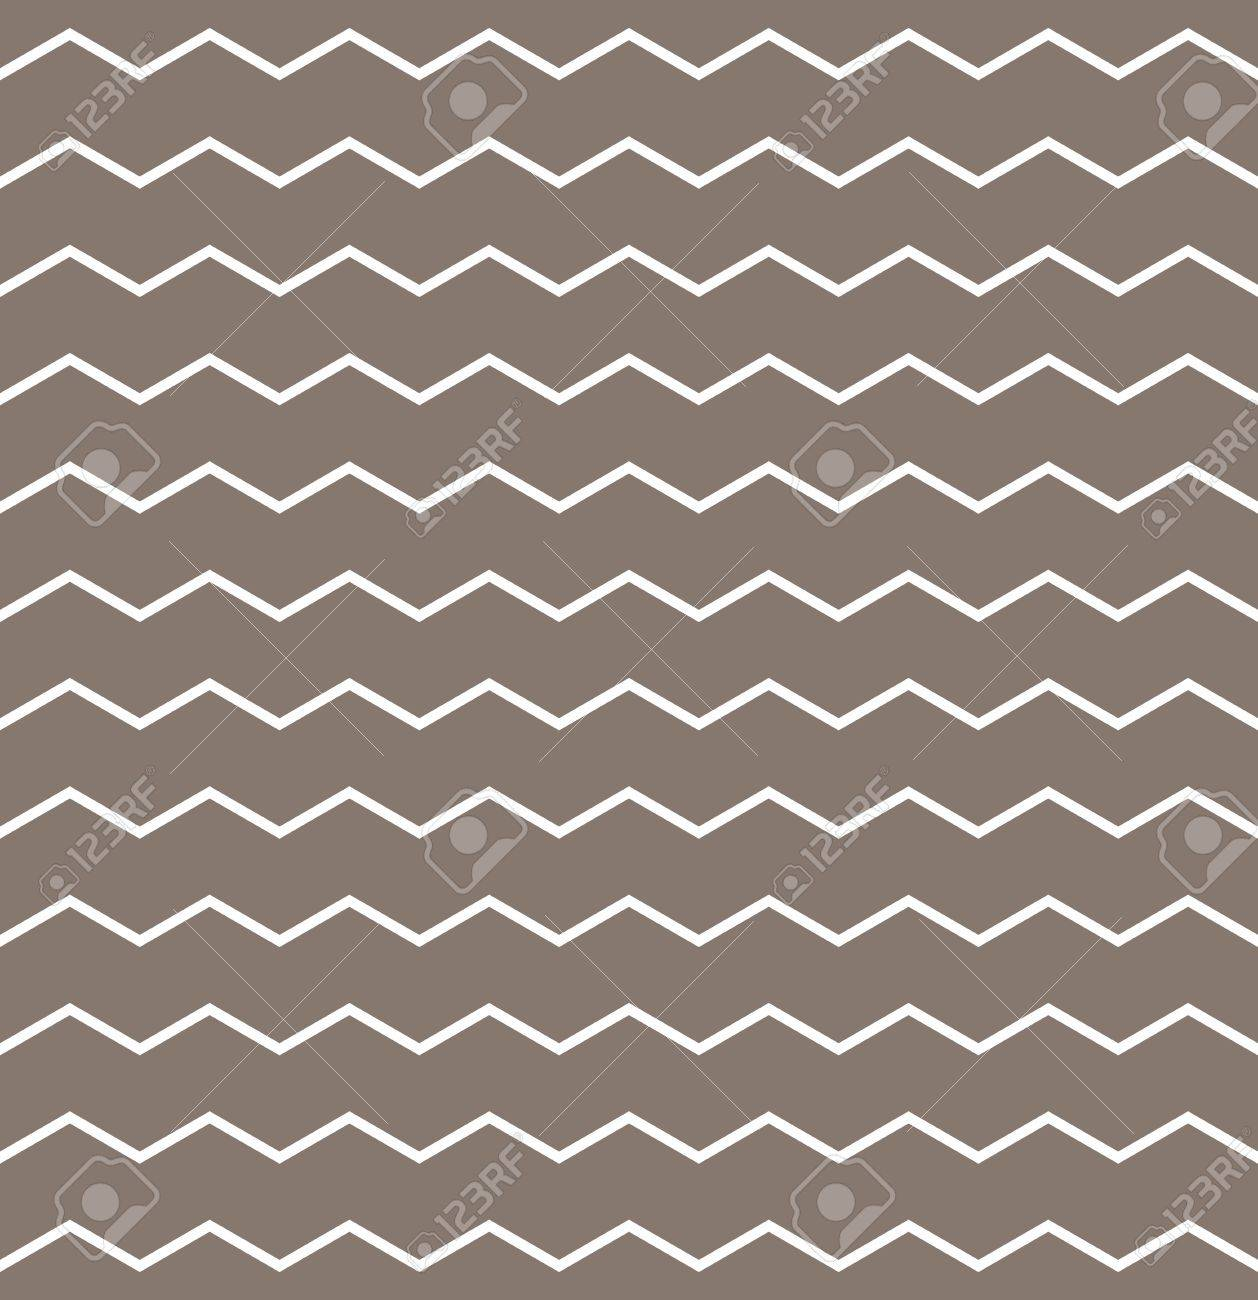 Zig Zag Chevron Vector Pattern With White Fabric On Brown ...